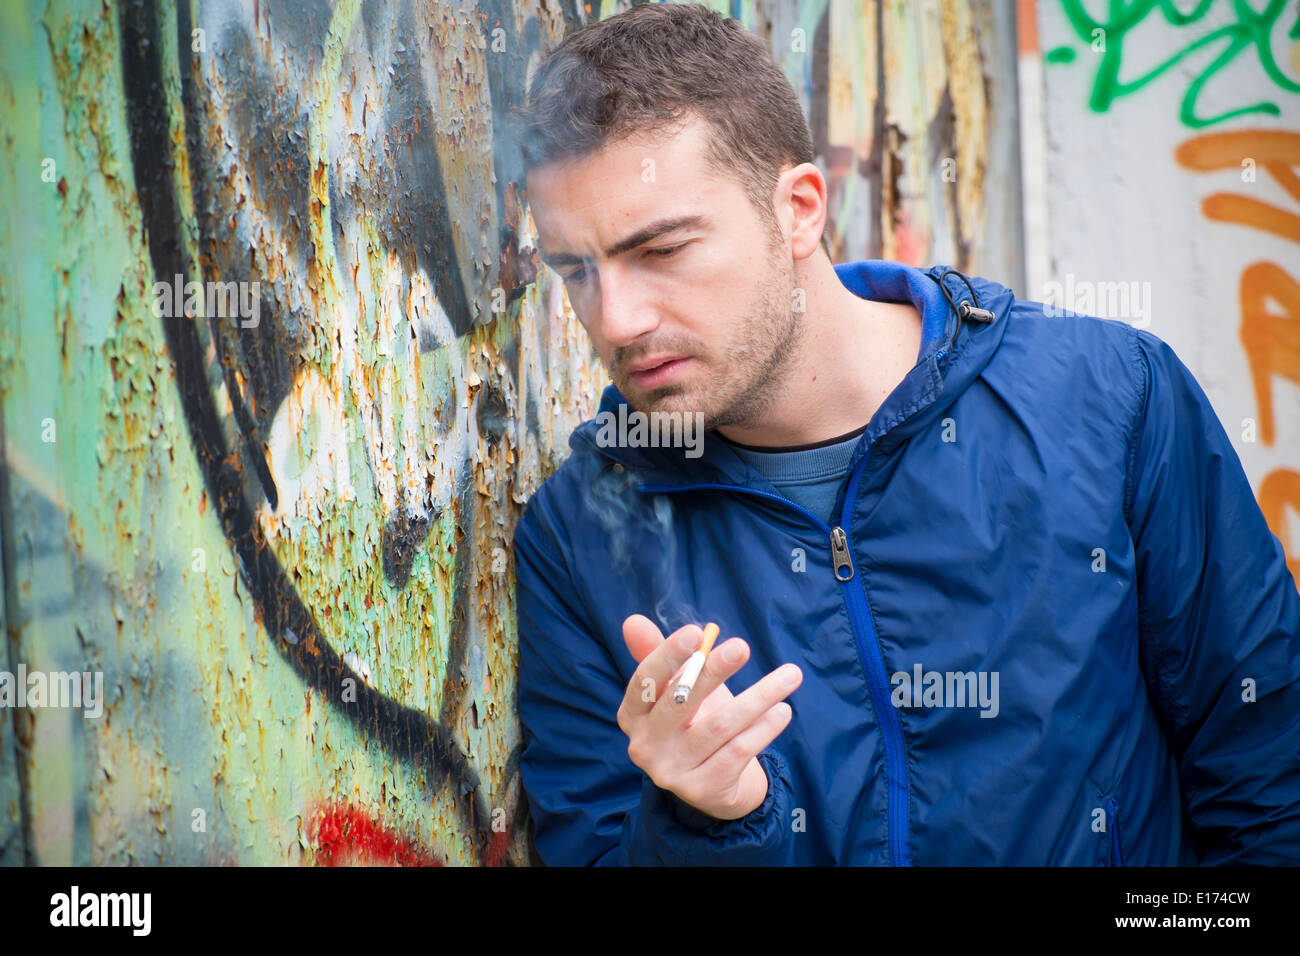 Man with smoke dependence - Stock Image